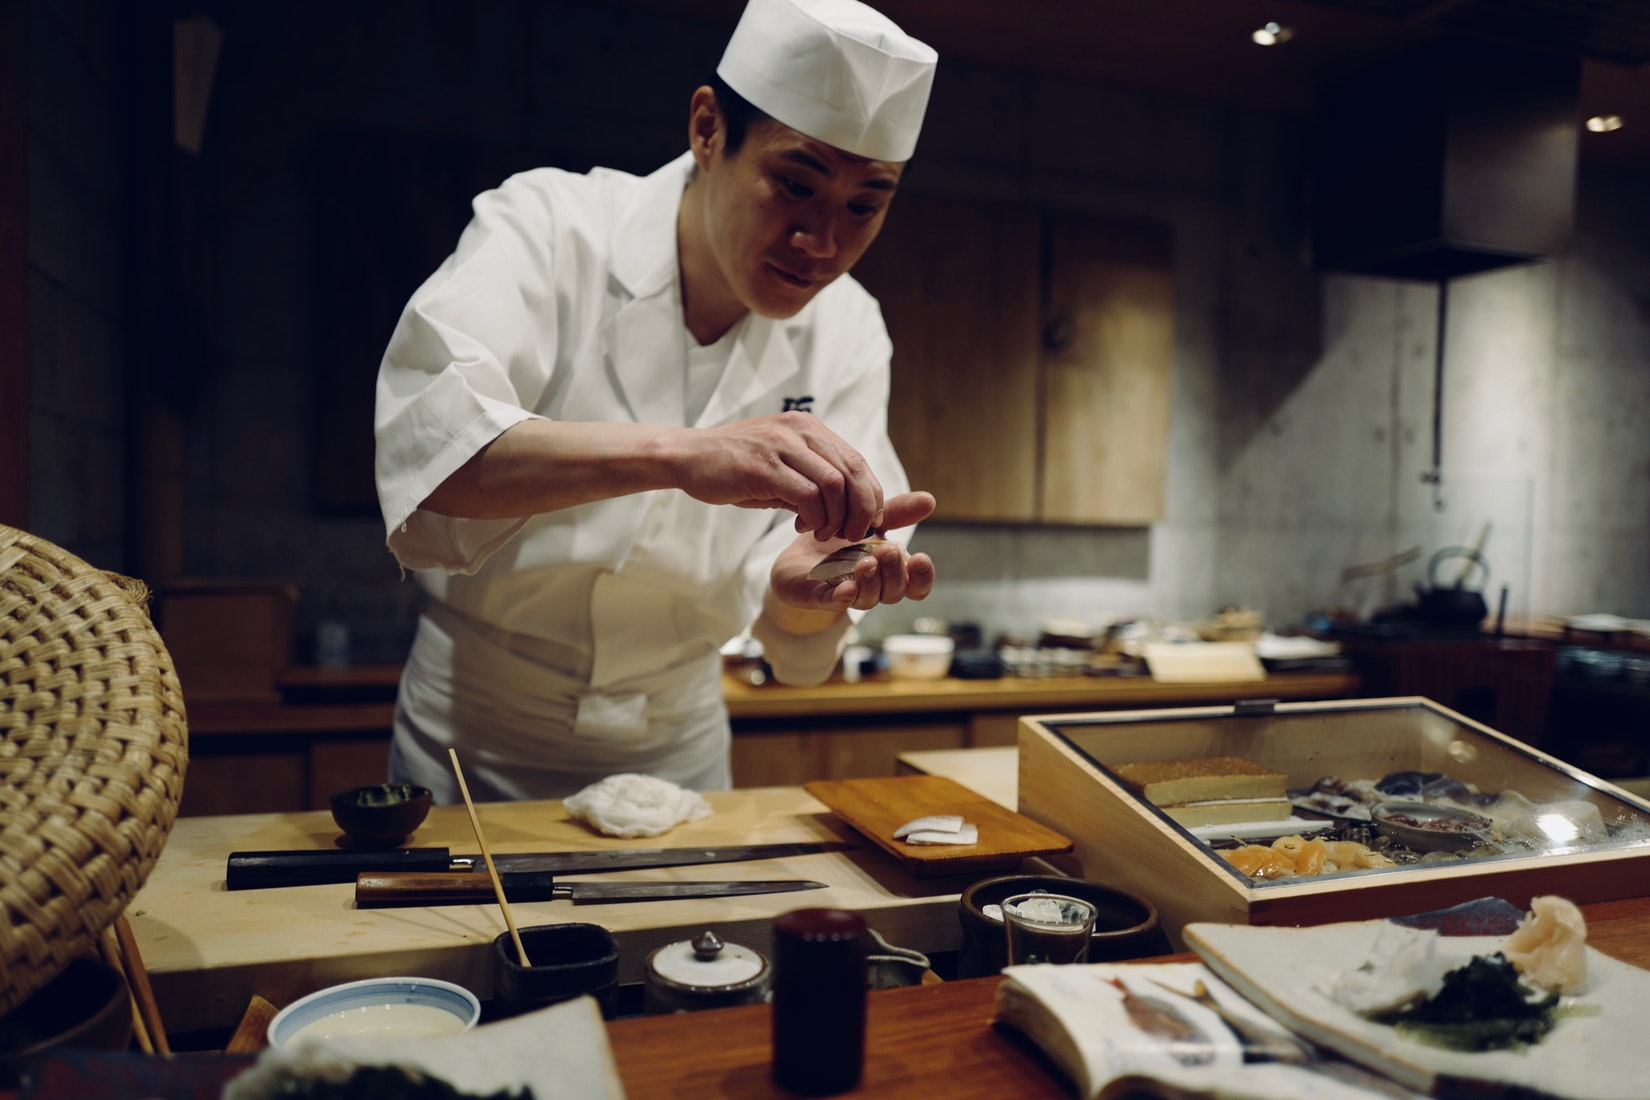 Chef concentrating while preparing Japanese food.